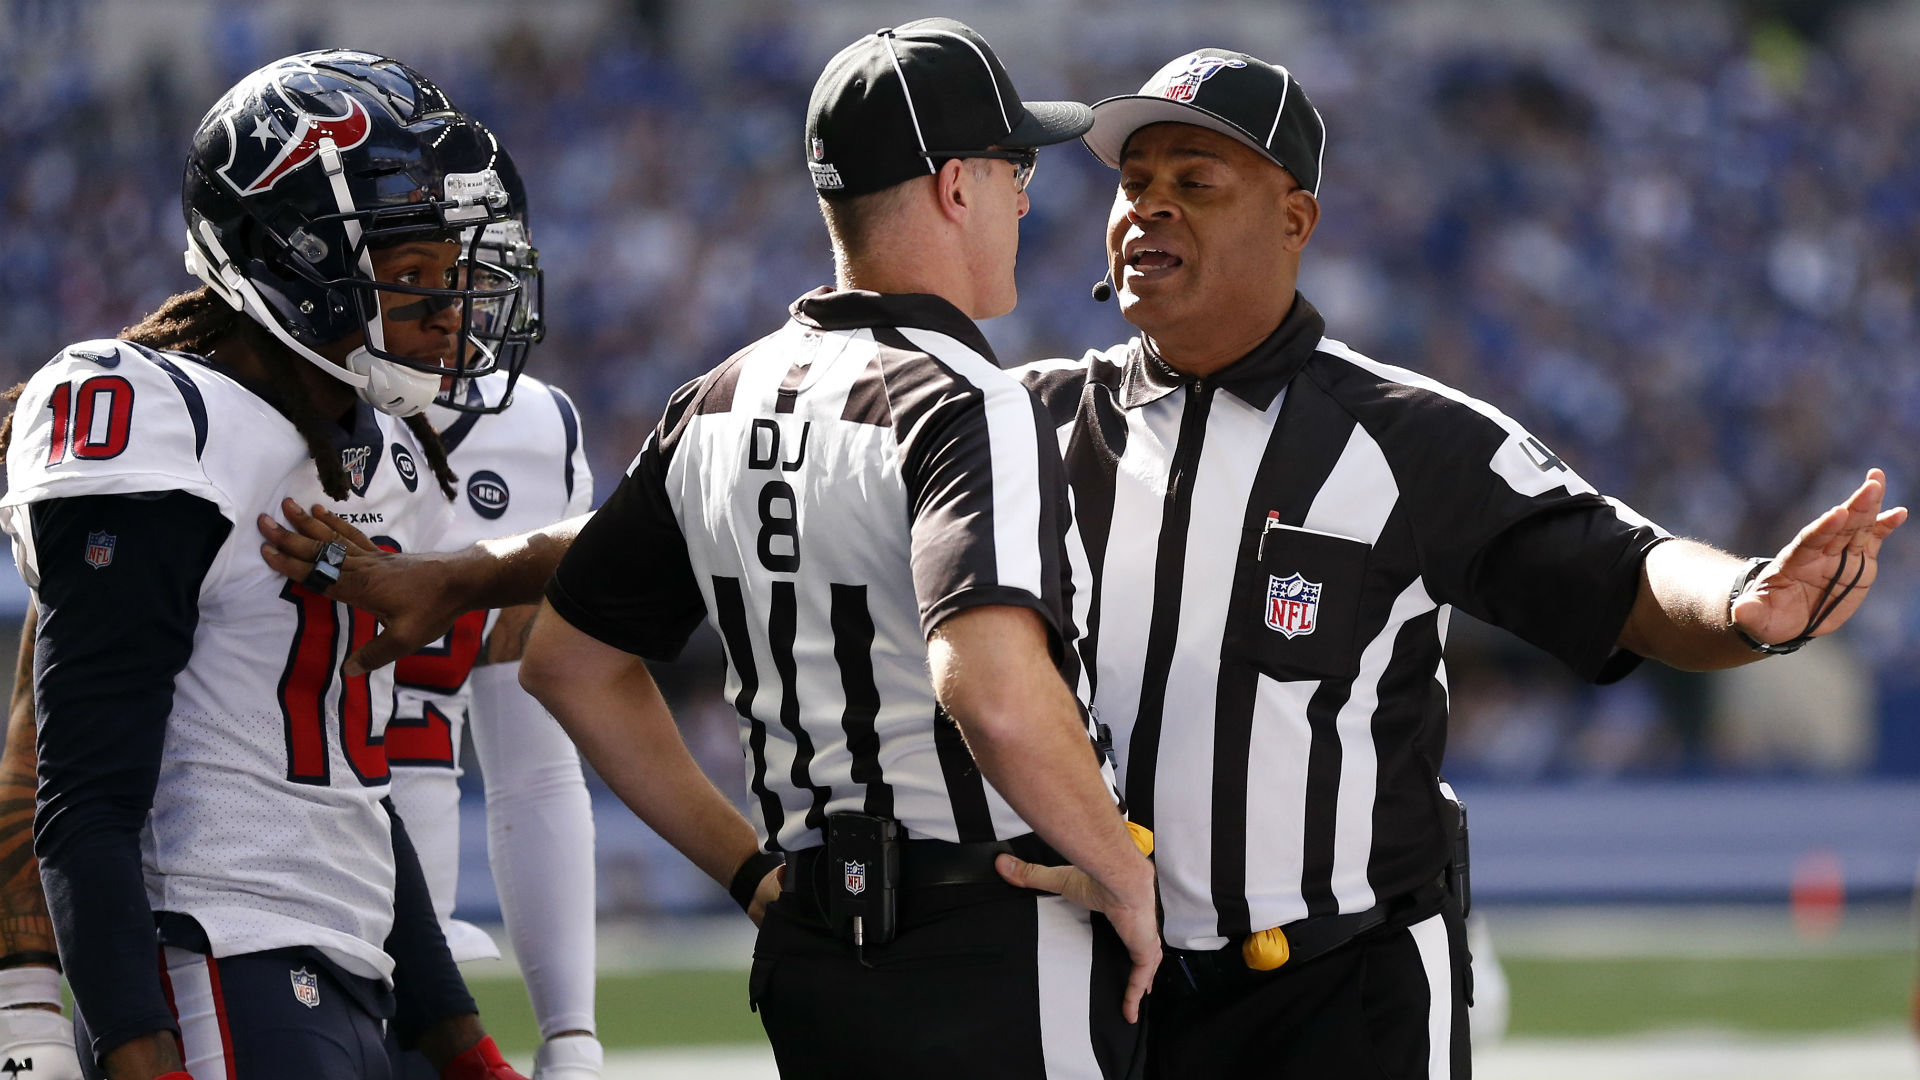 NFL (again) refuses to reverse badly missed pass interference call, this time in Texans vs. Ravens